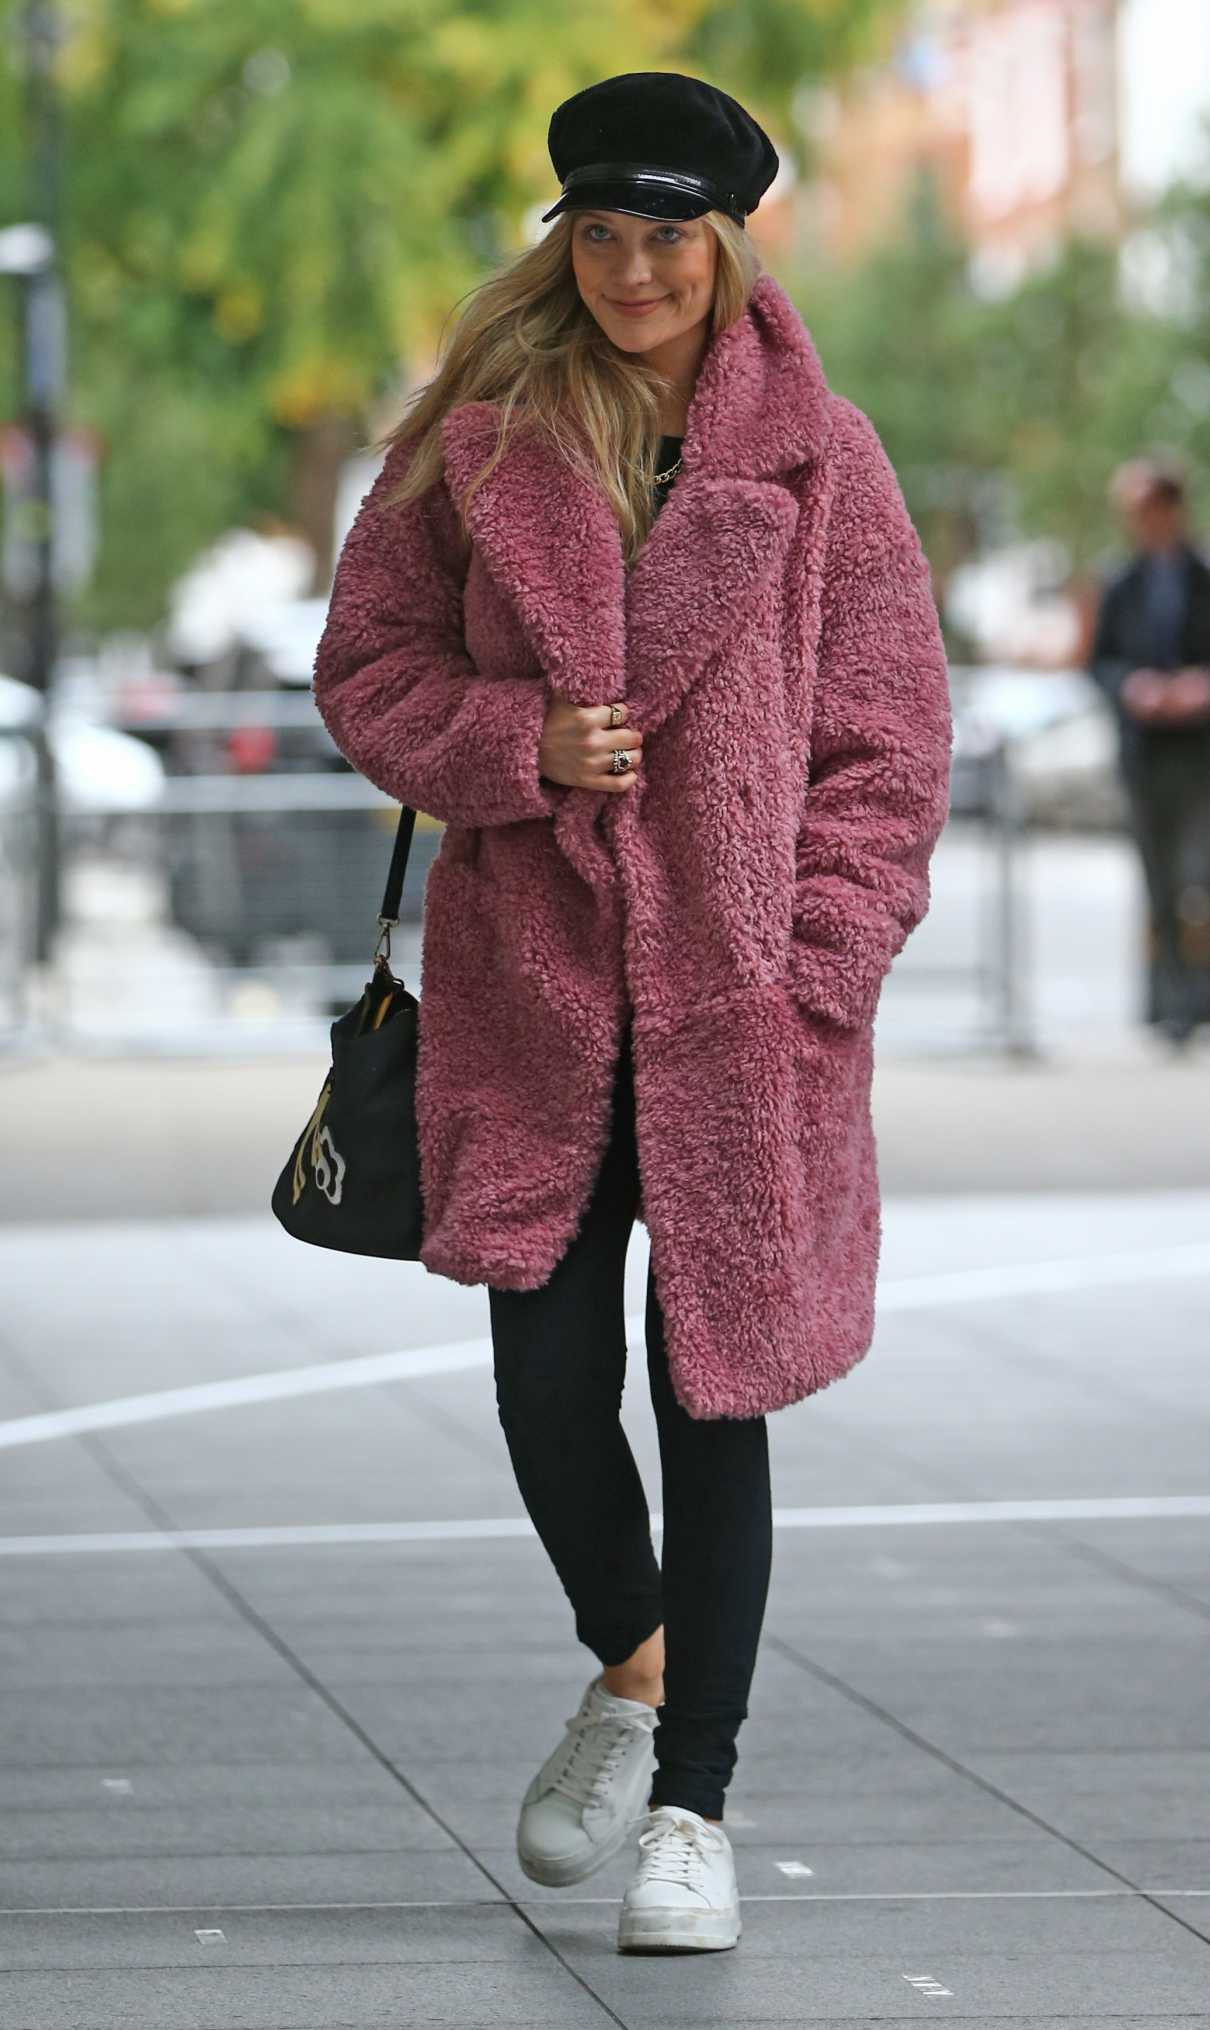 Laura Whitmore in a Pink Faux Fur Coat